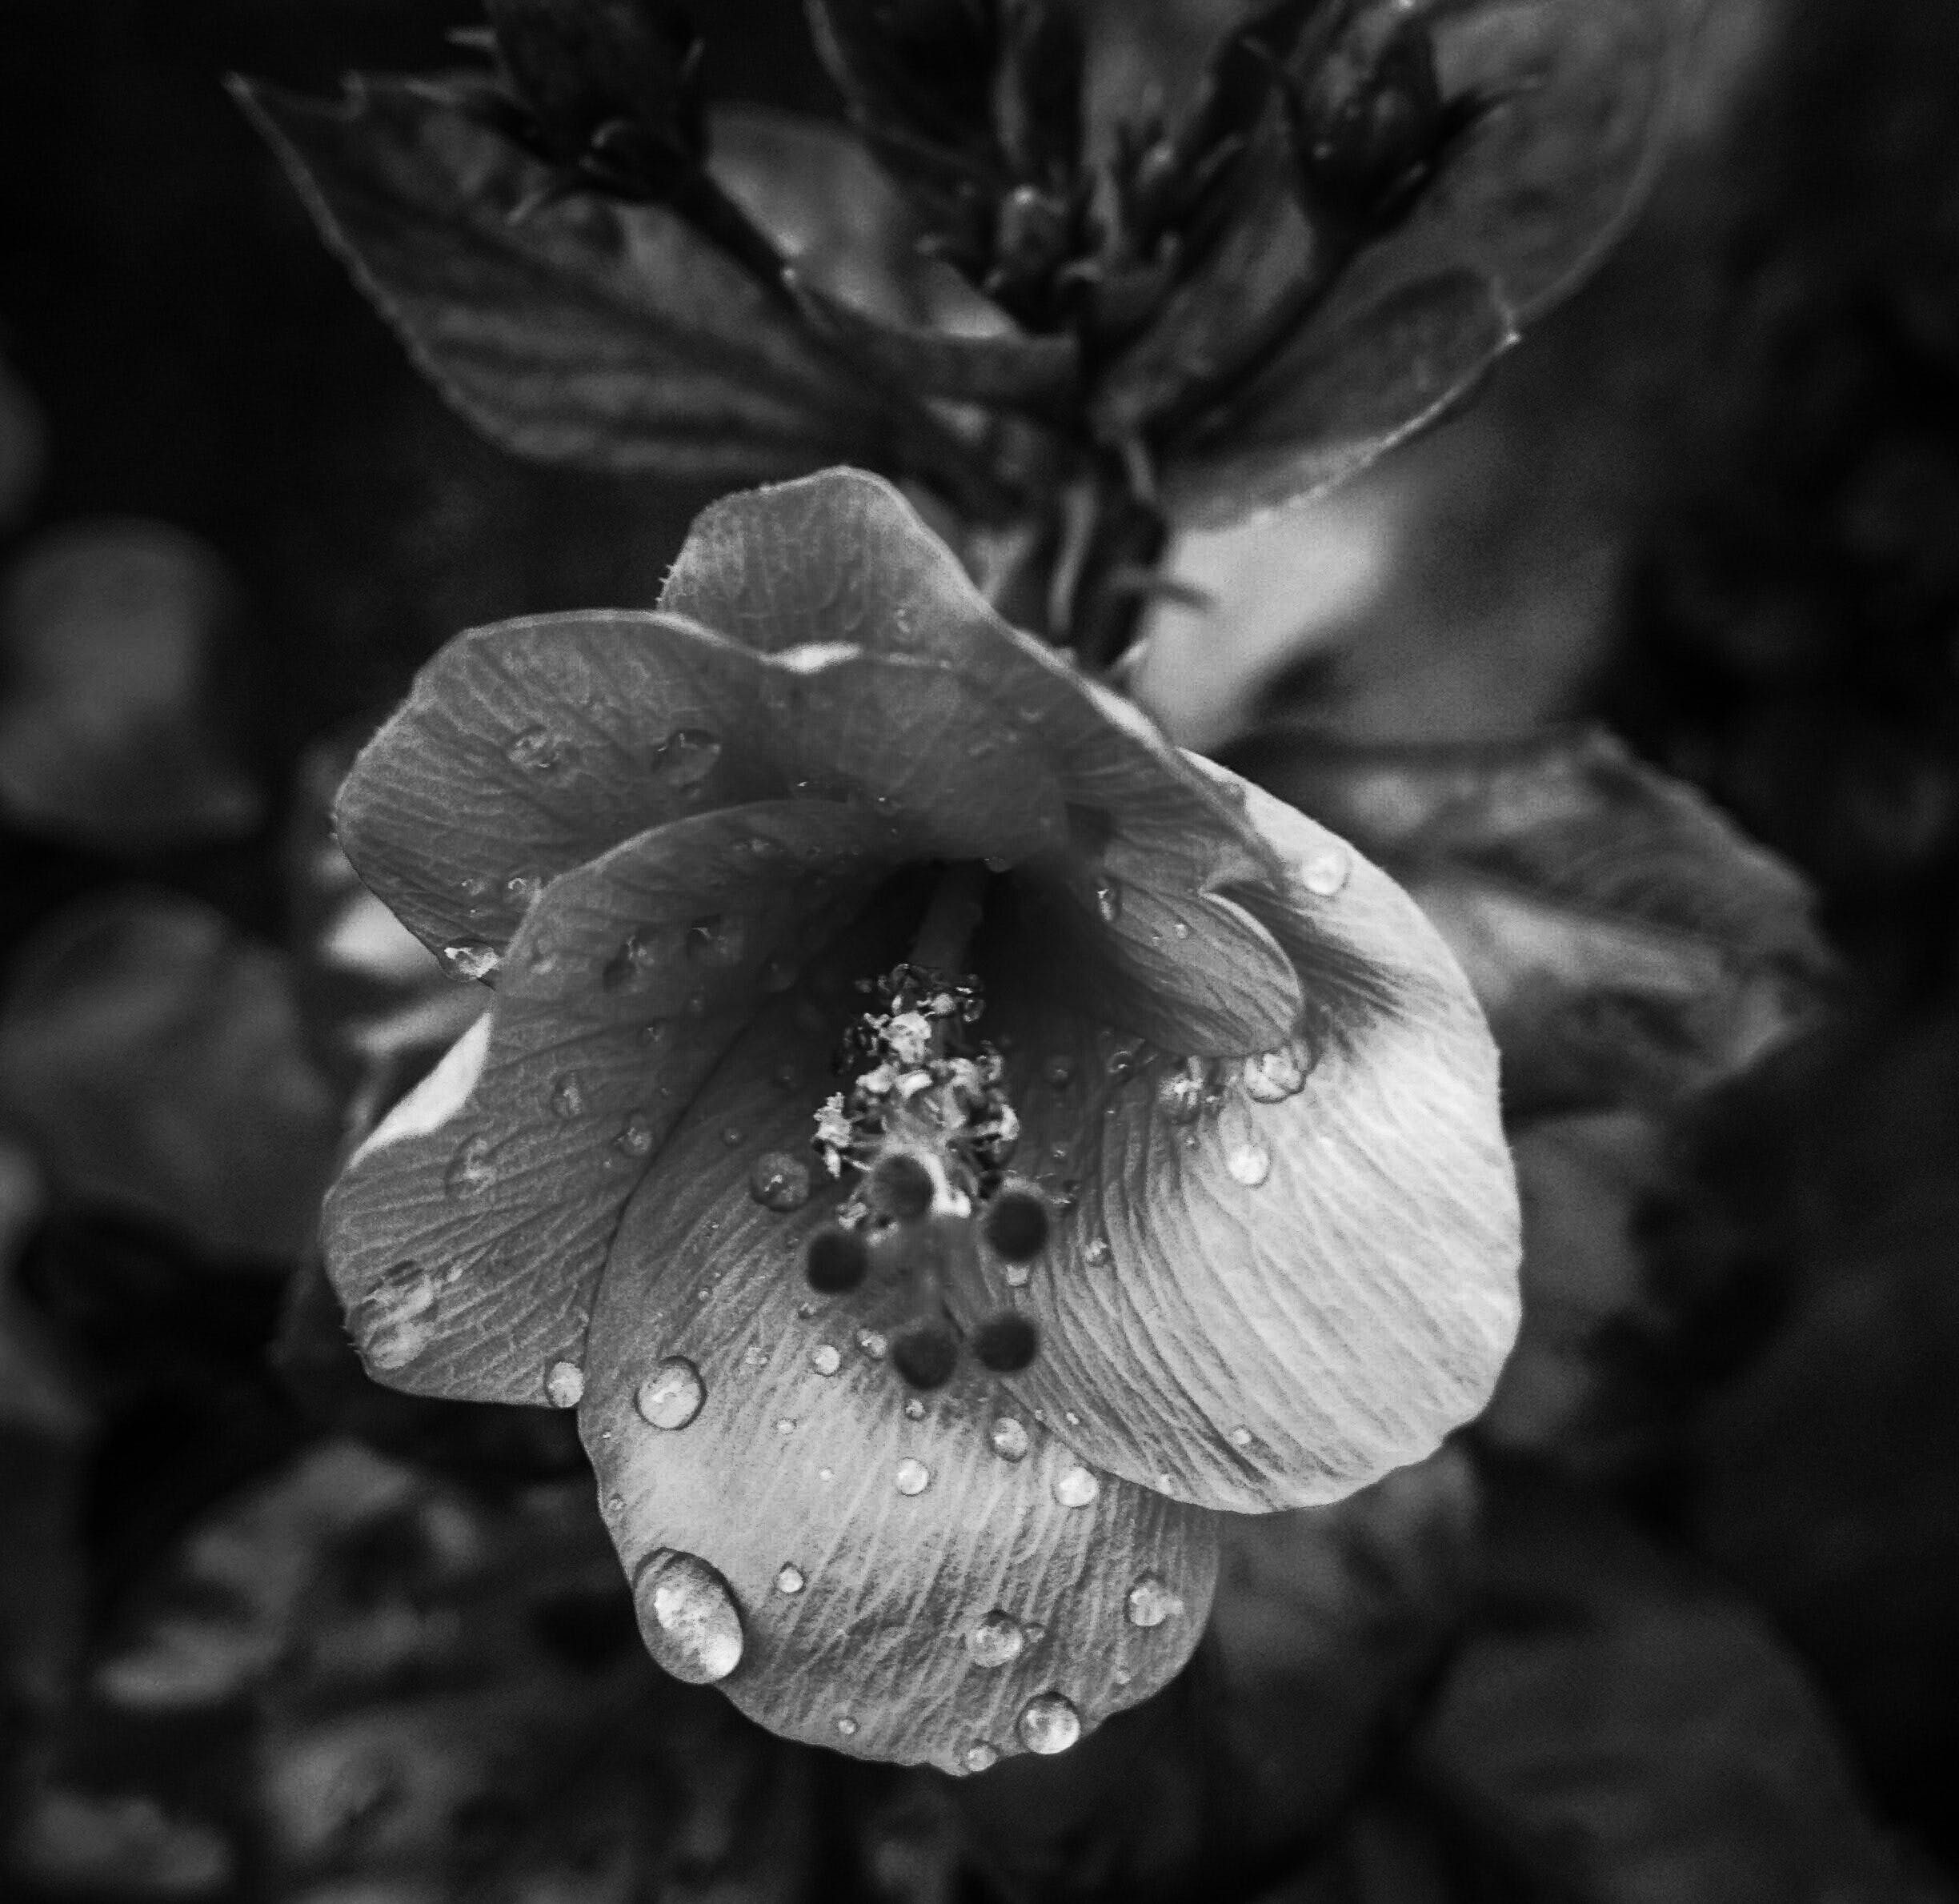 Grayscale Photo of Petaled Flower